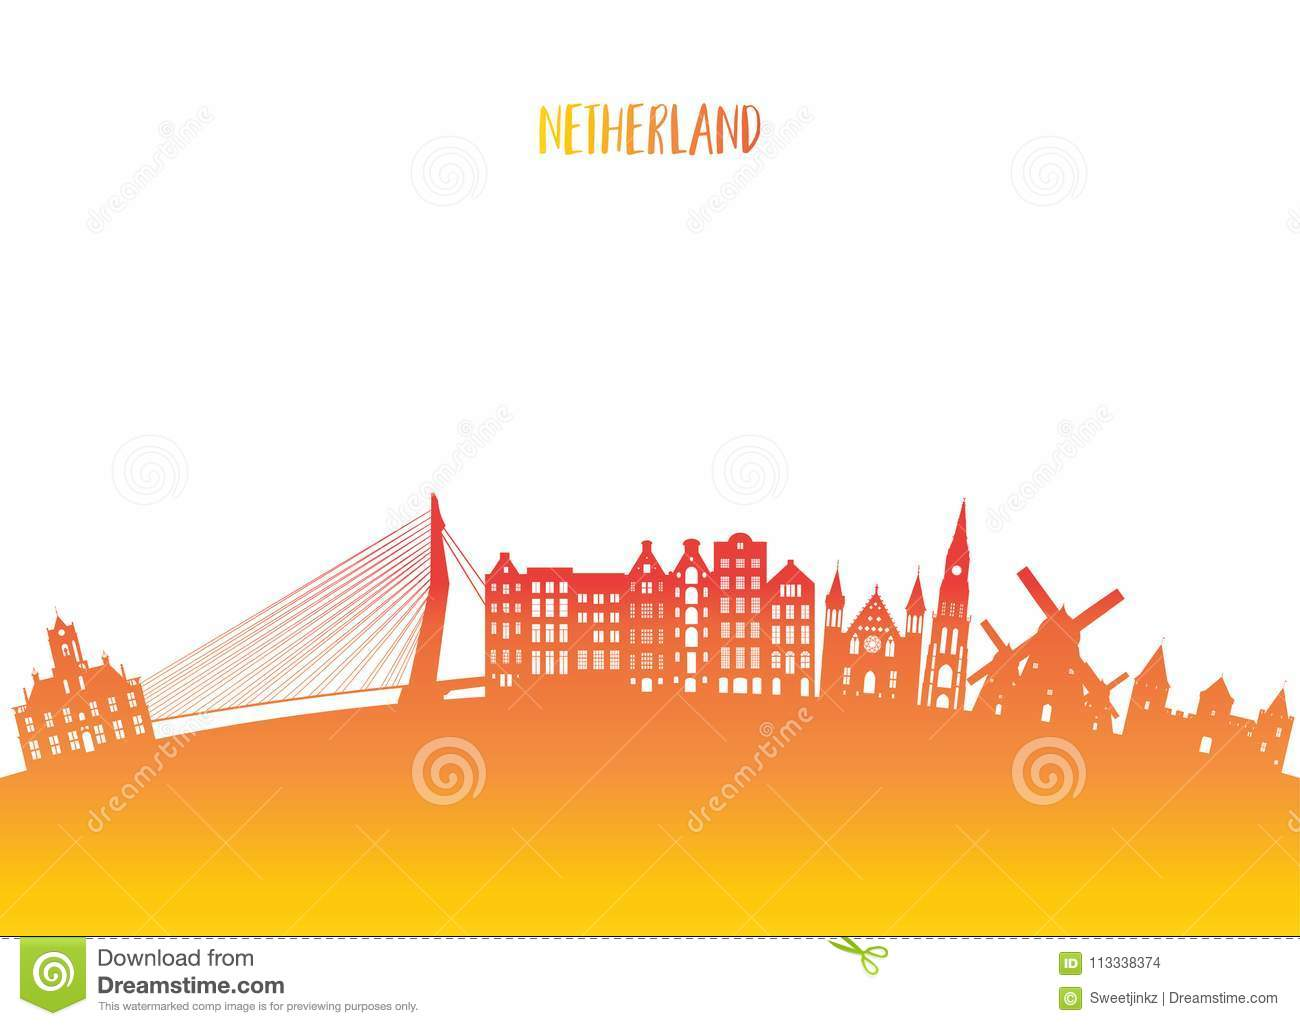 Netherland Landmark Global Travel And Journey Paper Background Vector Design Templateused For Your Advertisement Book Banner Template Business